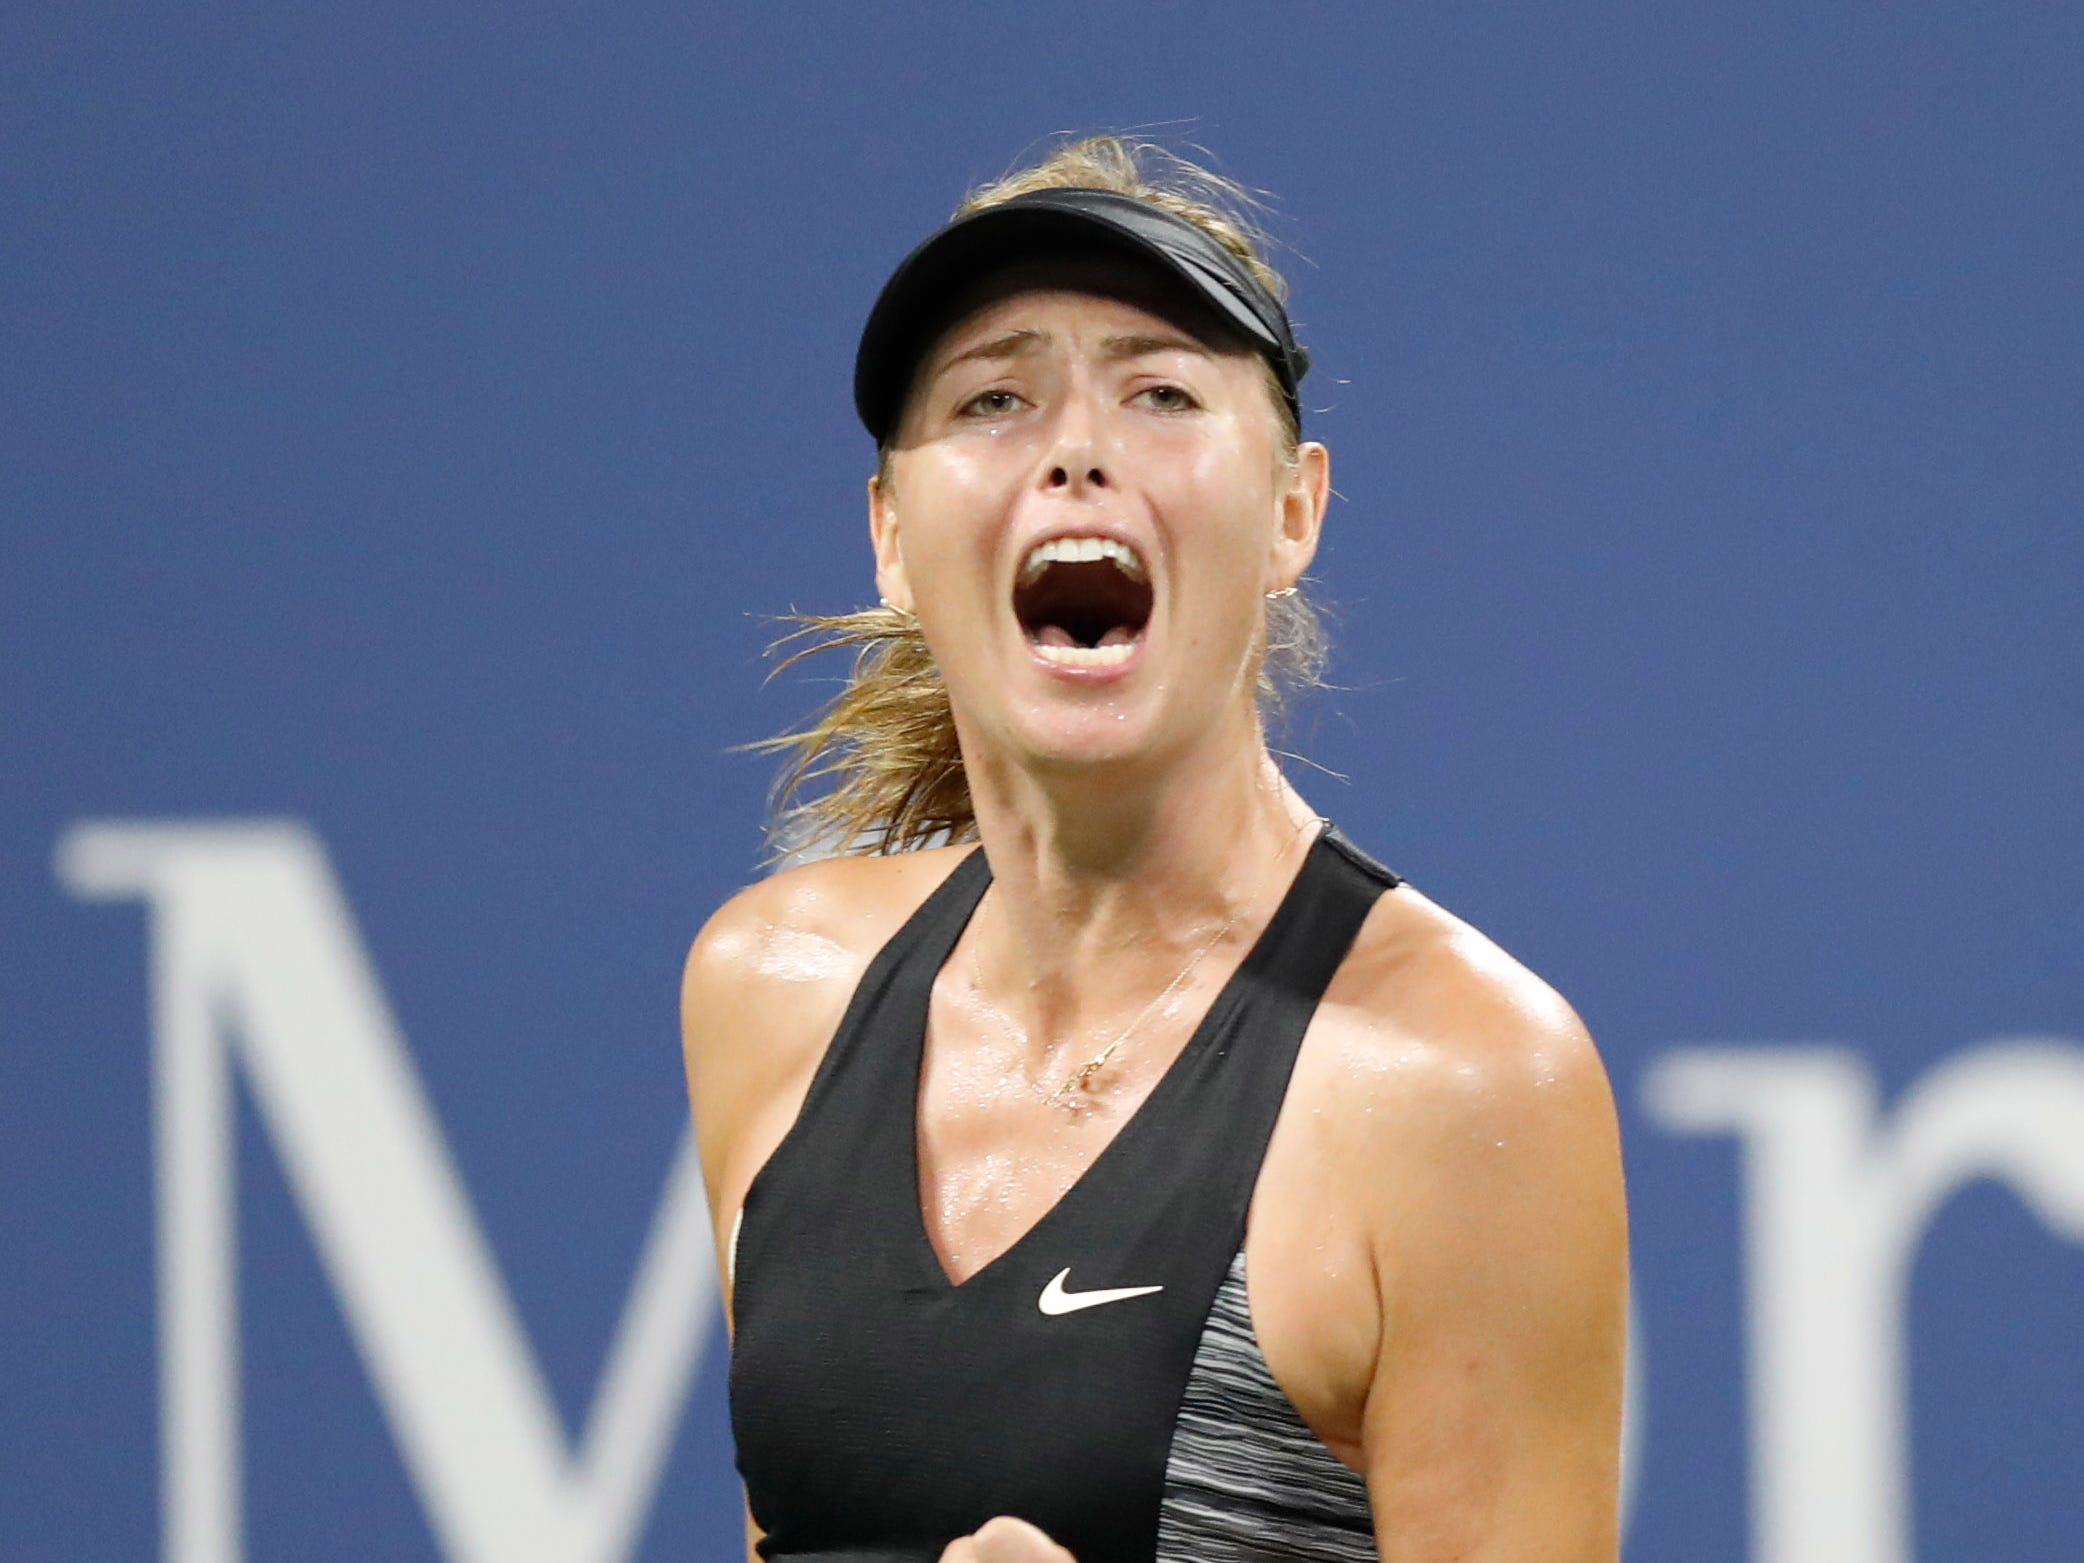 Maria Sharapova of Russia celebrates during her first-round victory against Patty Schnyder of Switzerland.